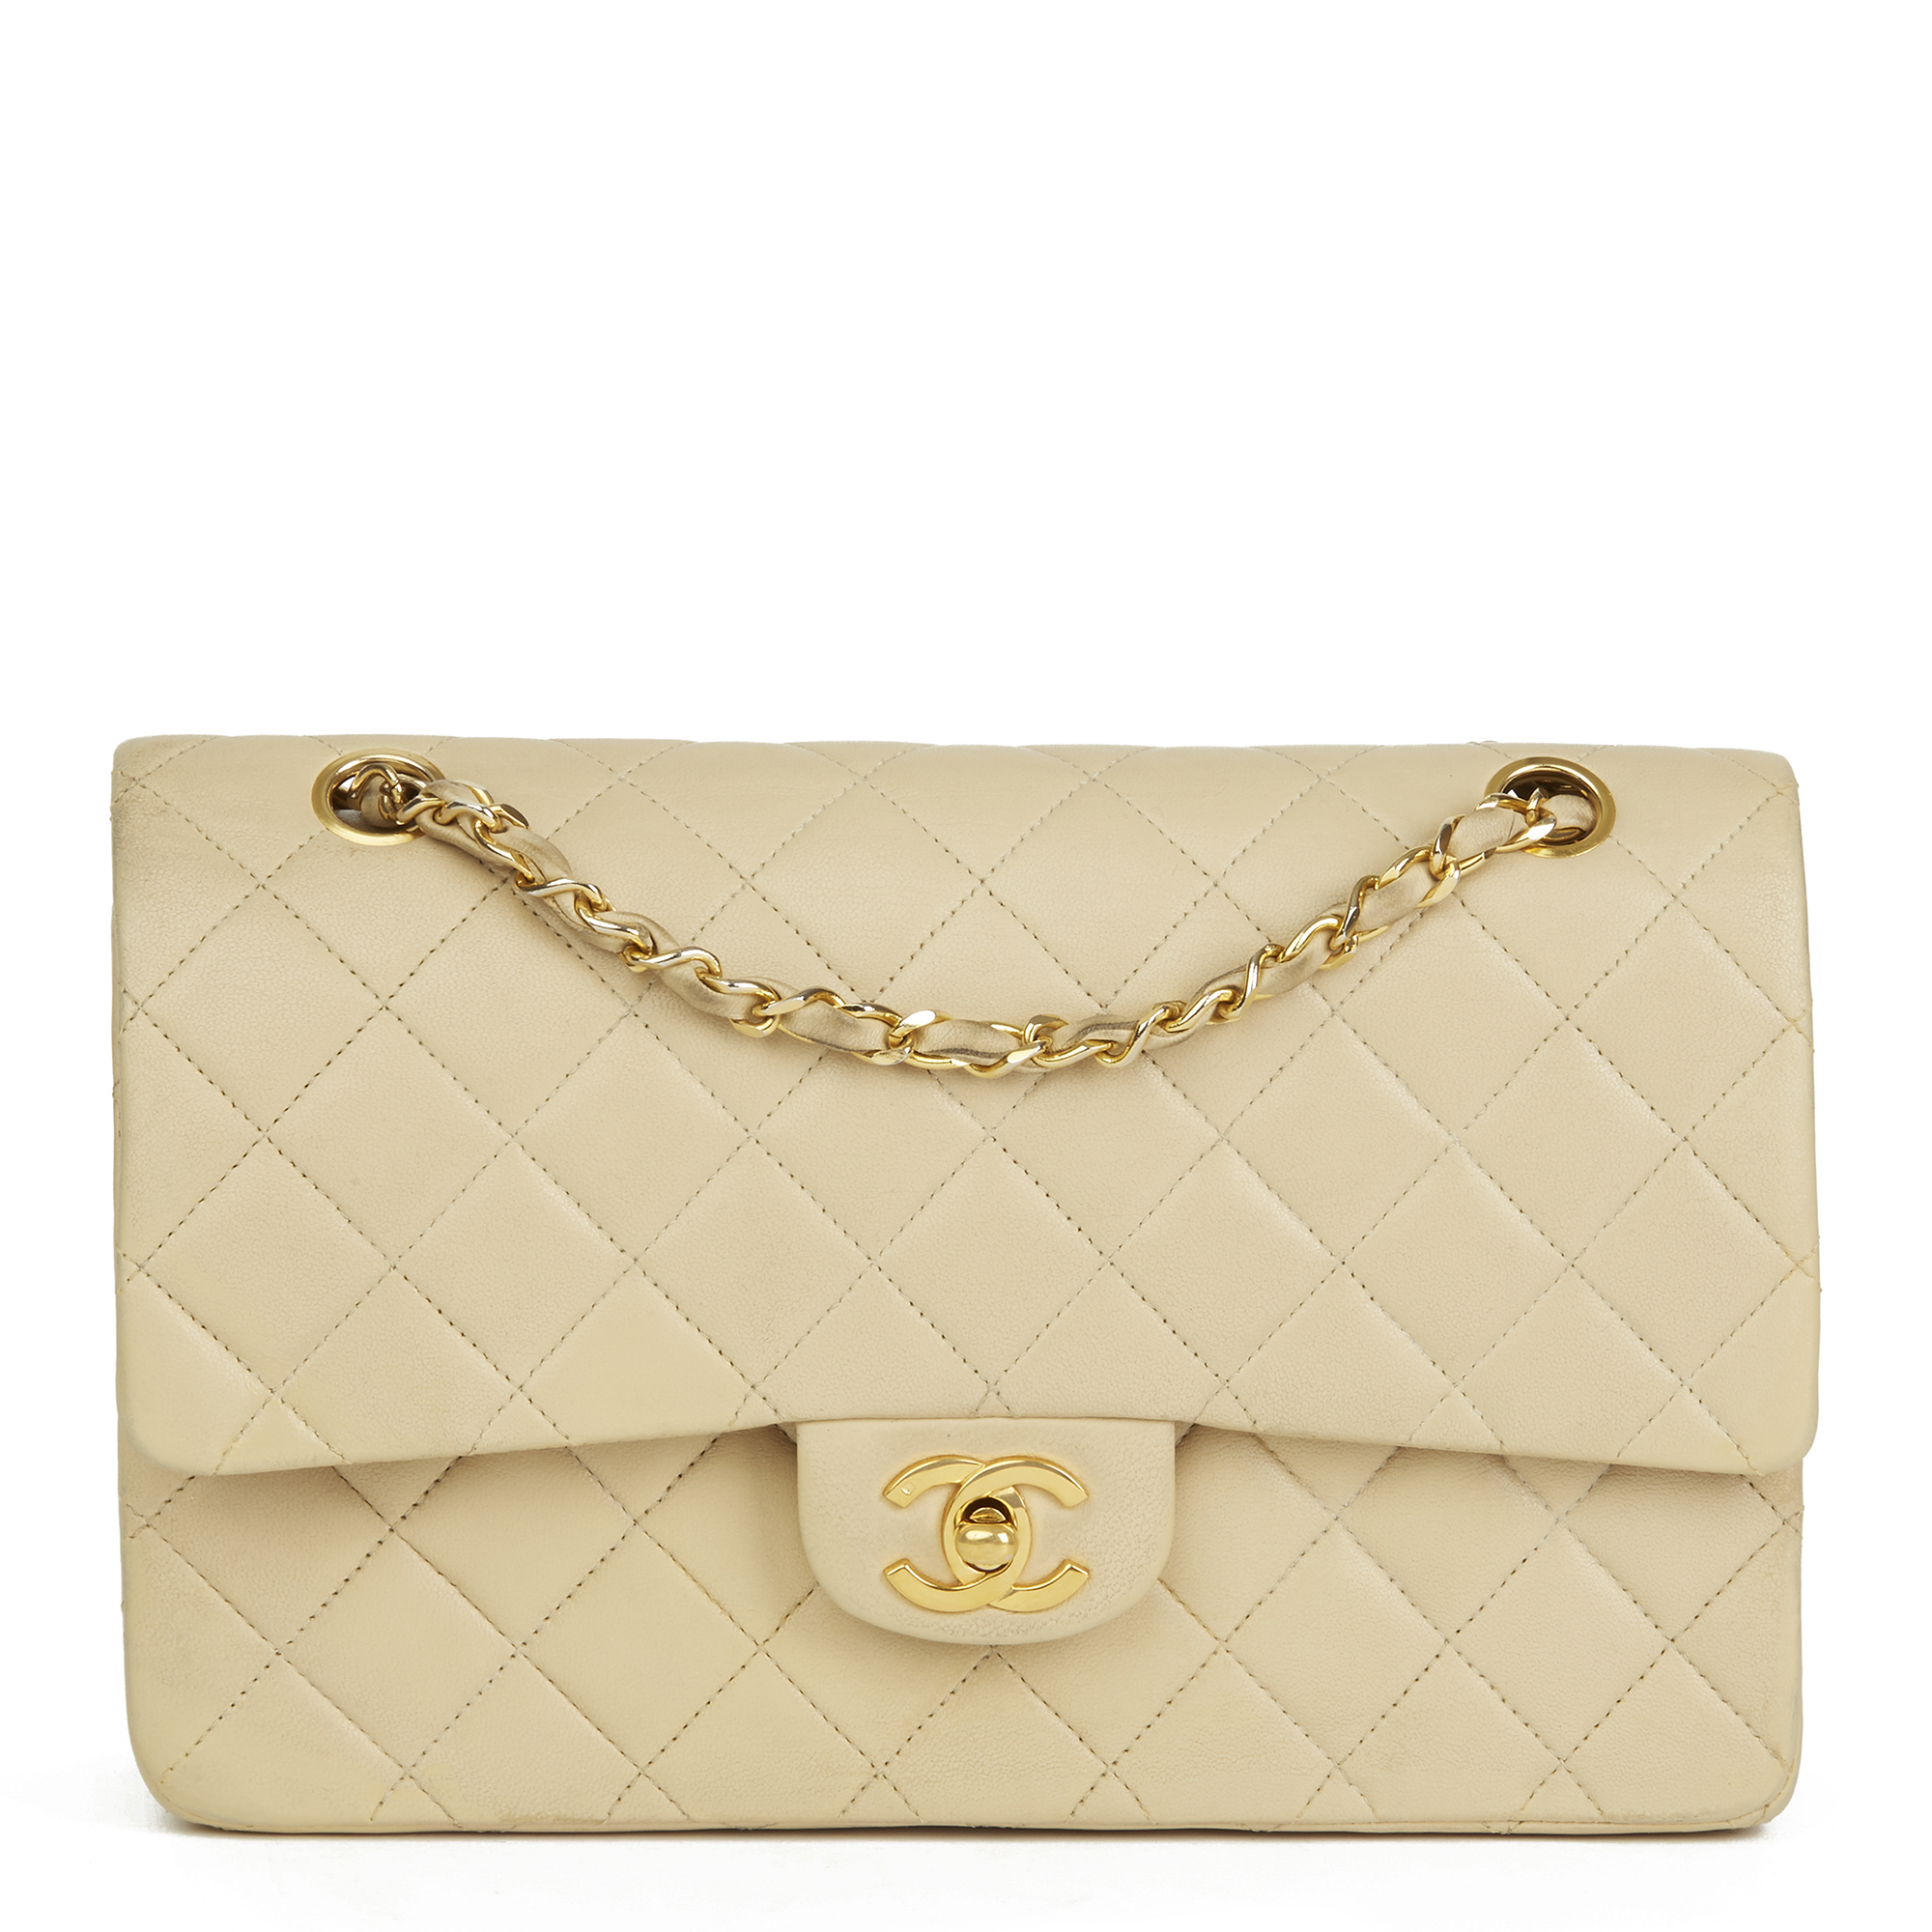 CHANEL BEIGE QUILTED LAMBSKIN VINTAGE CLASSIC DOUBLE FLAP BAG HB2502 ... 0be74565e87b9